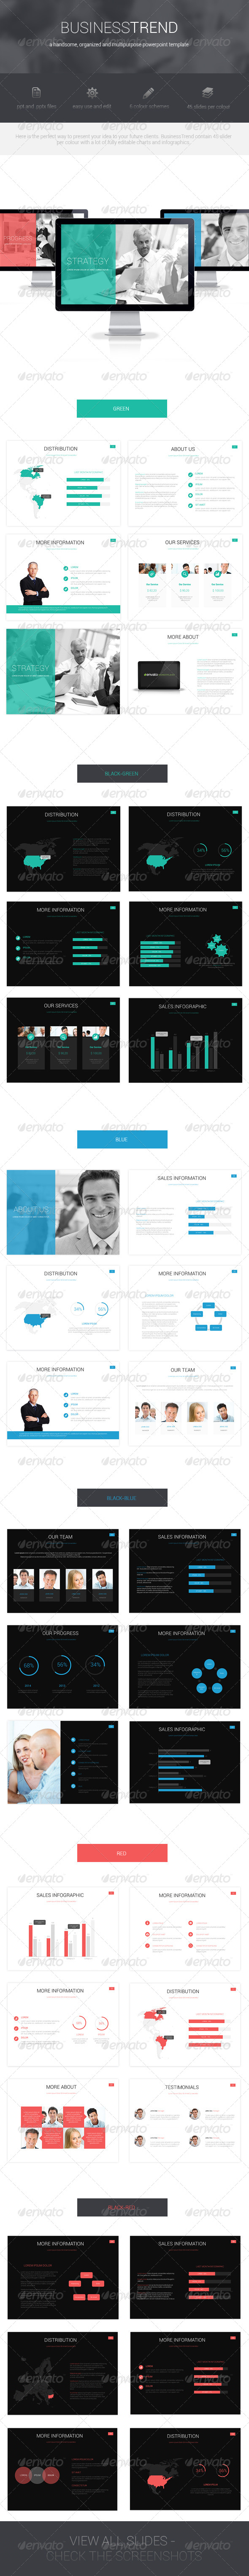 GraphicRiver Business Trend Powerpoint Template 6544817